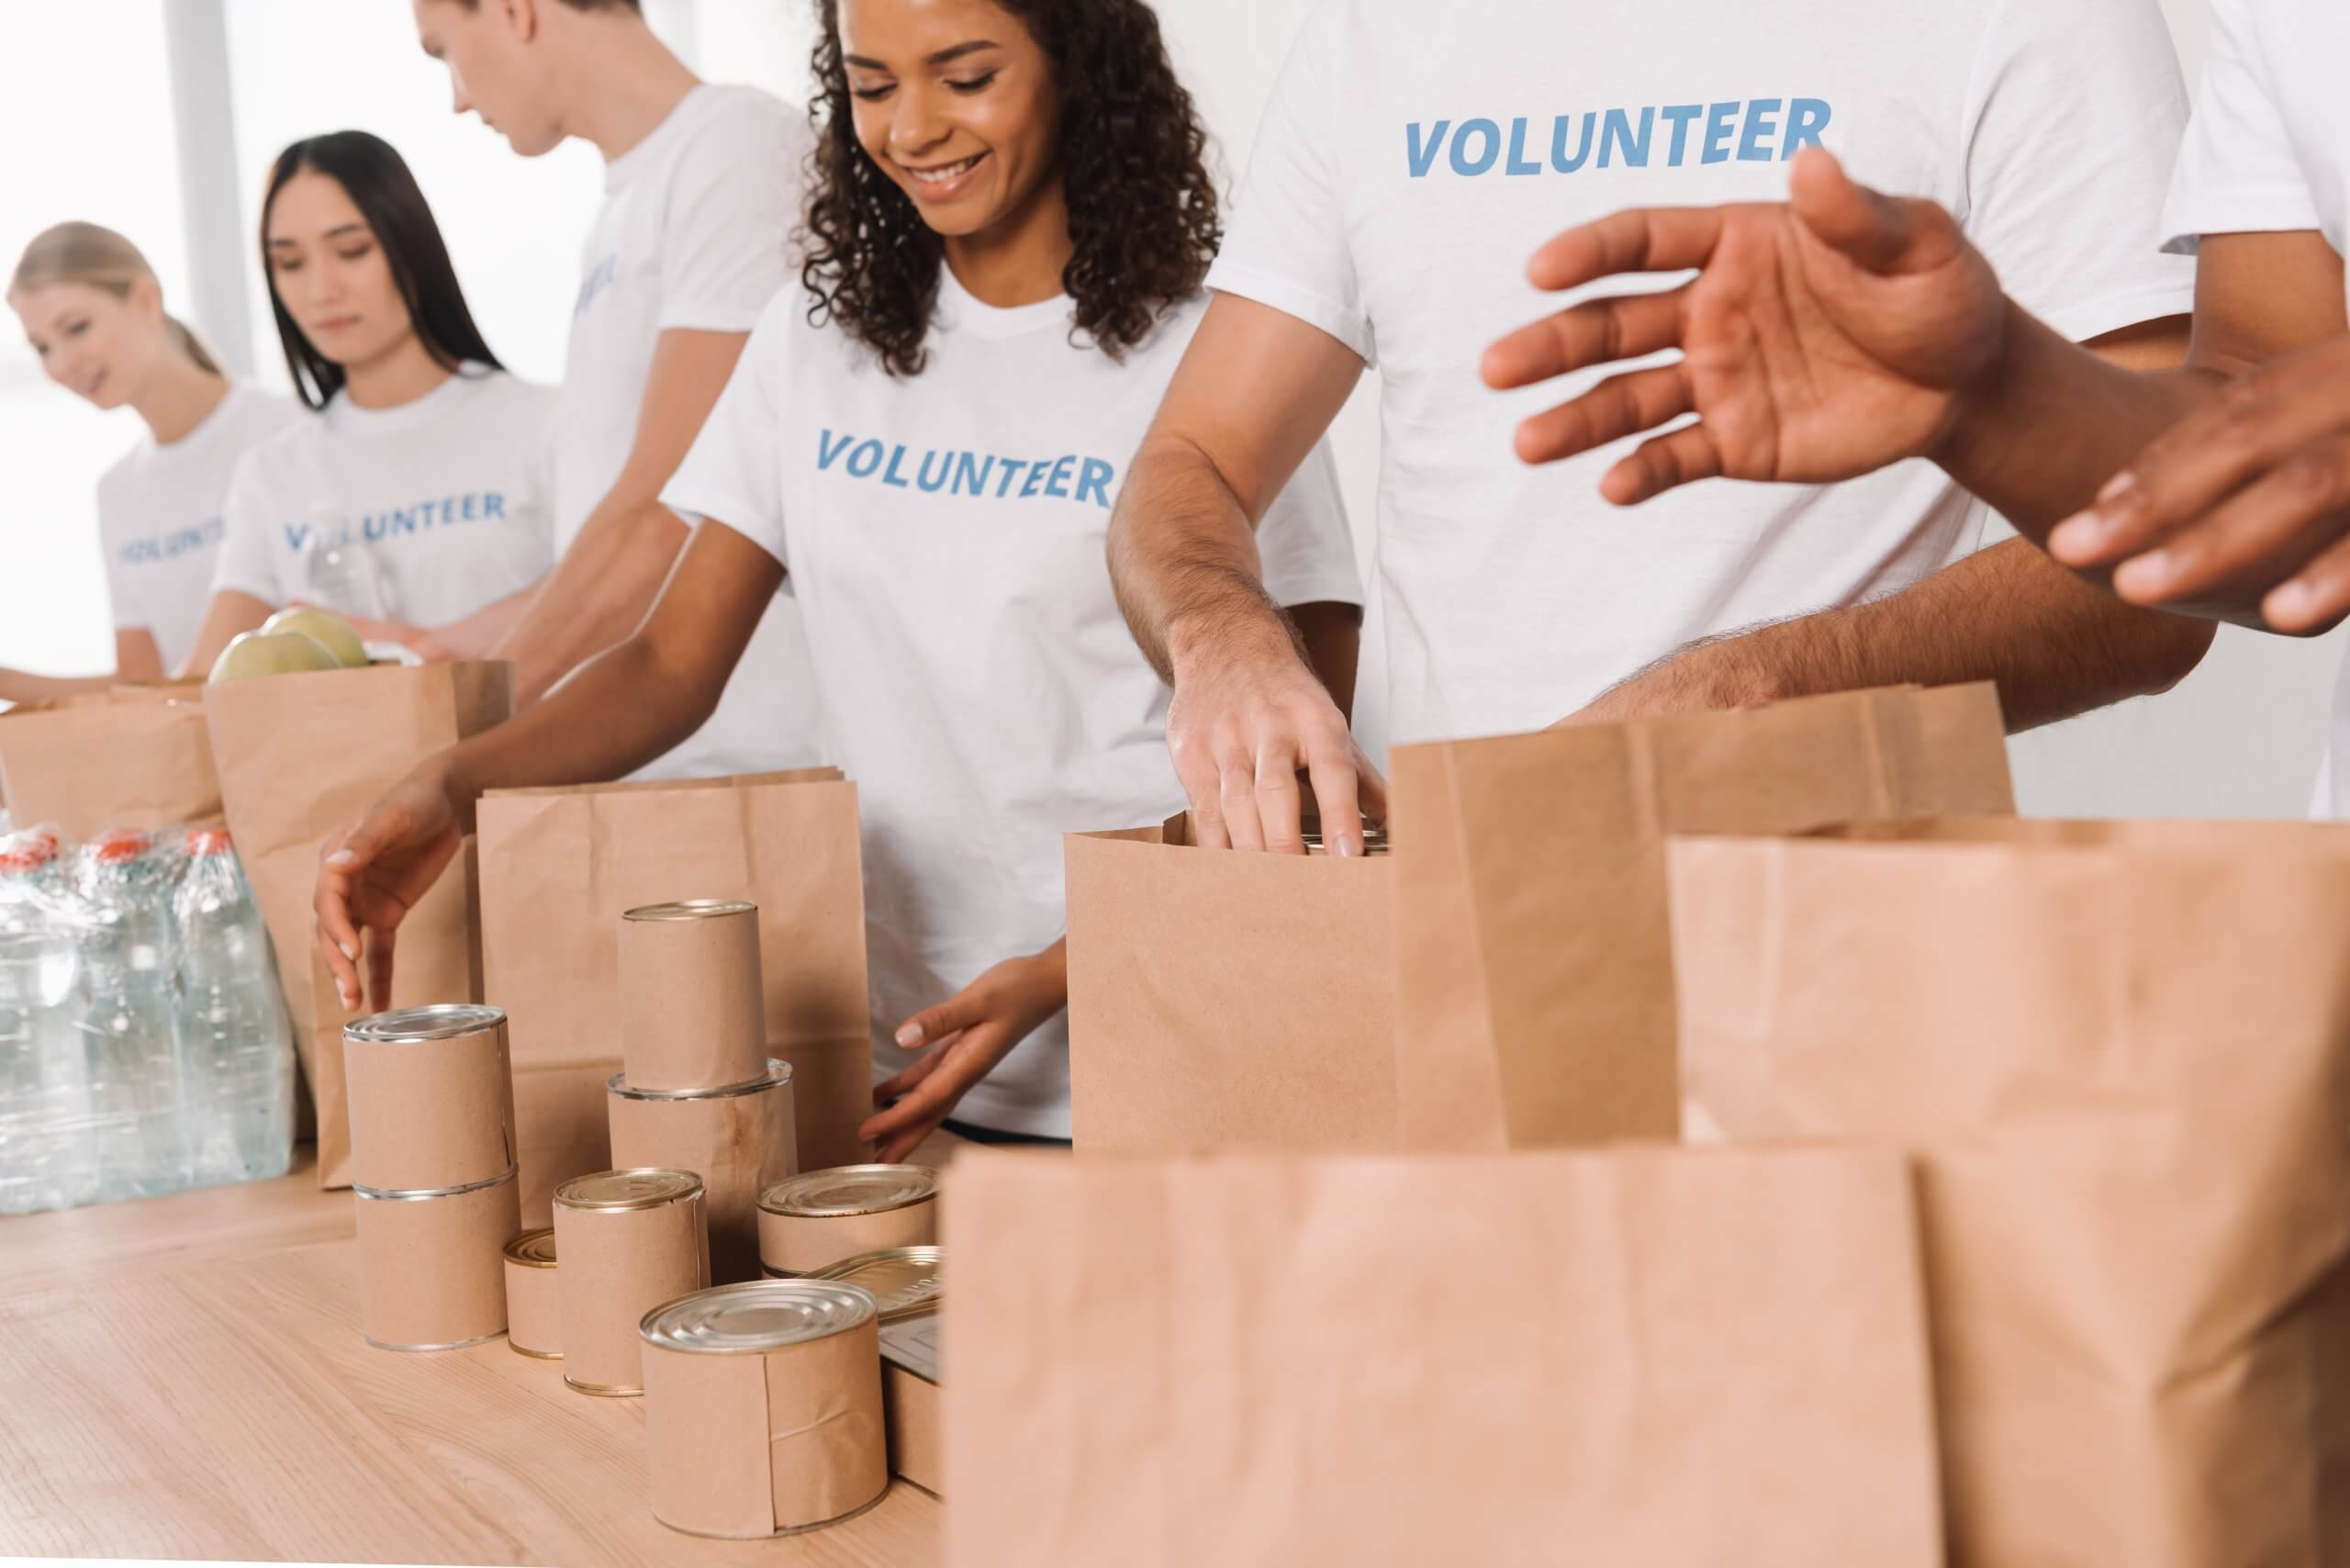 cropped shot of volunteers putting food and drinks into paper bags for charity